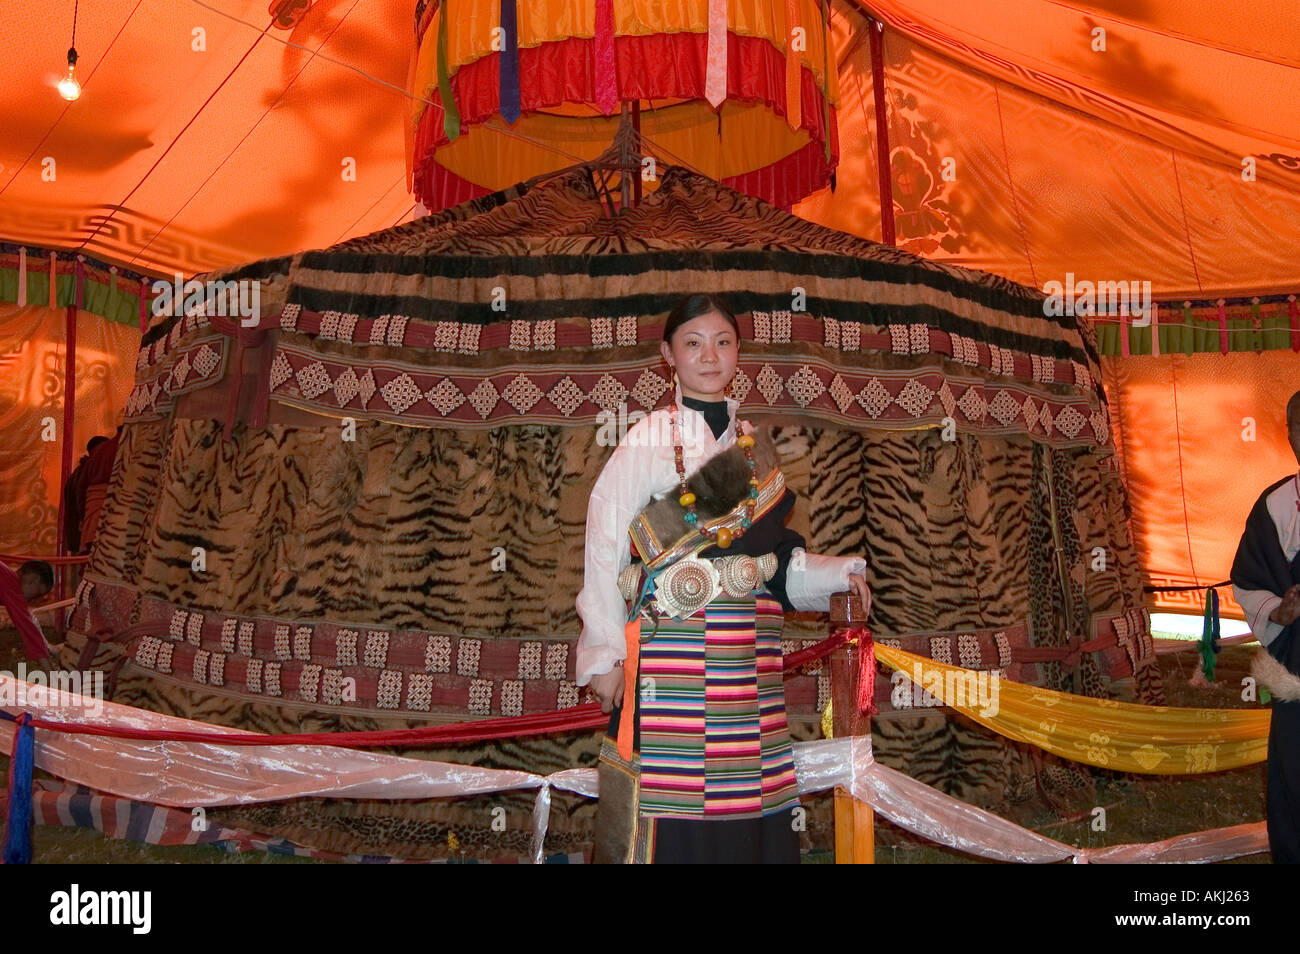 100 tiger skin tent given to the third Dalai Lama by Mongol King at Litang Sichuan Province China Eastern Tibet  - Stock Image